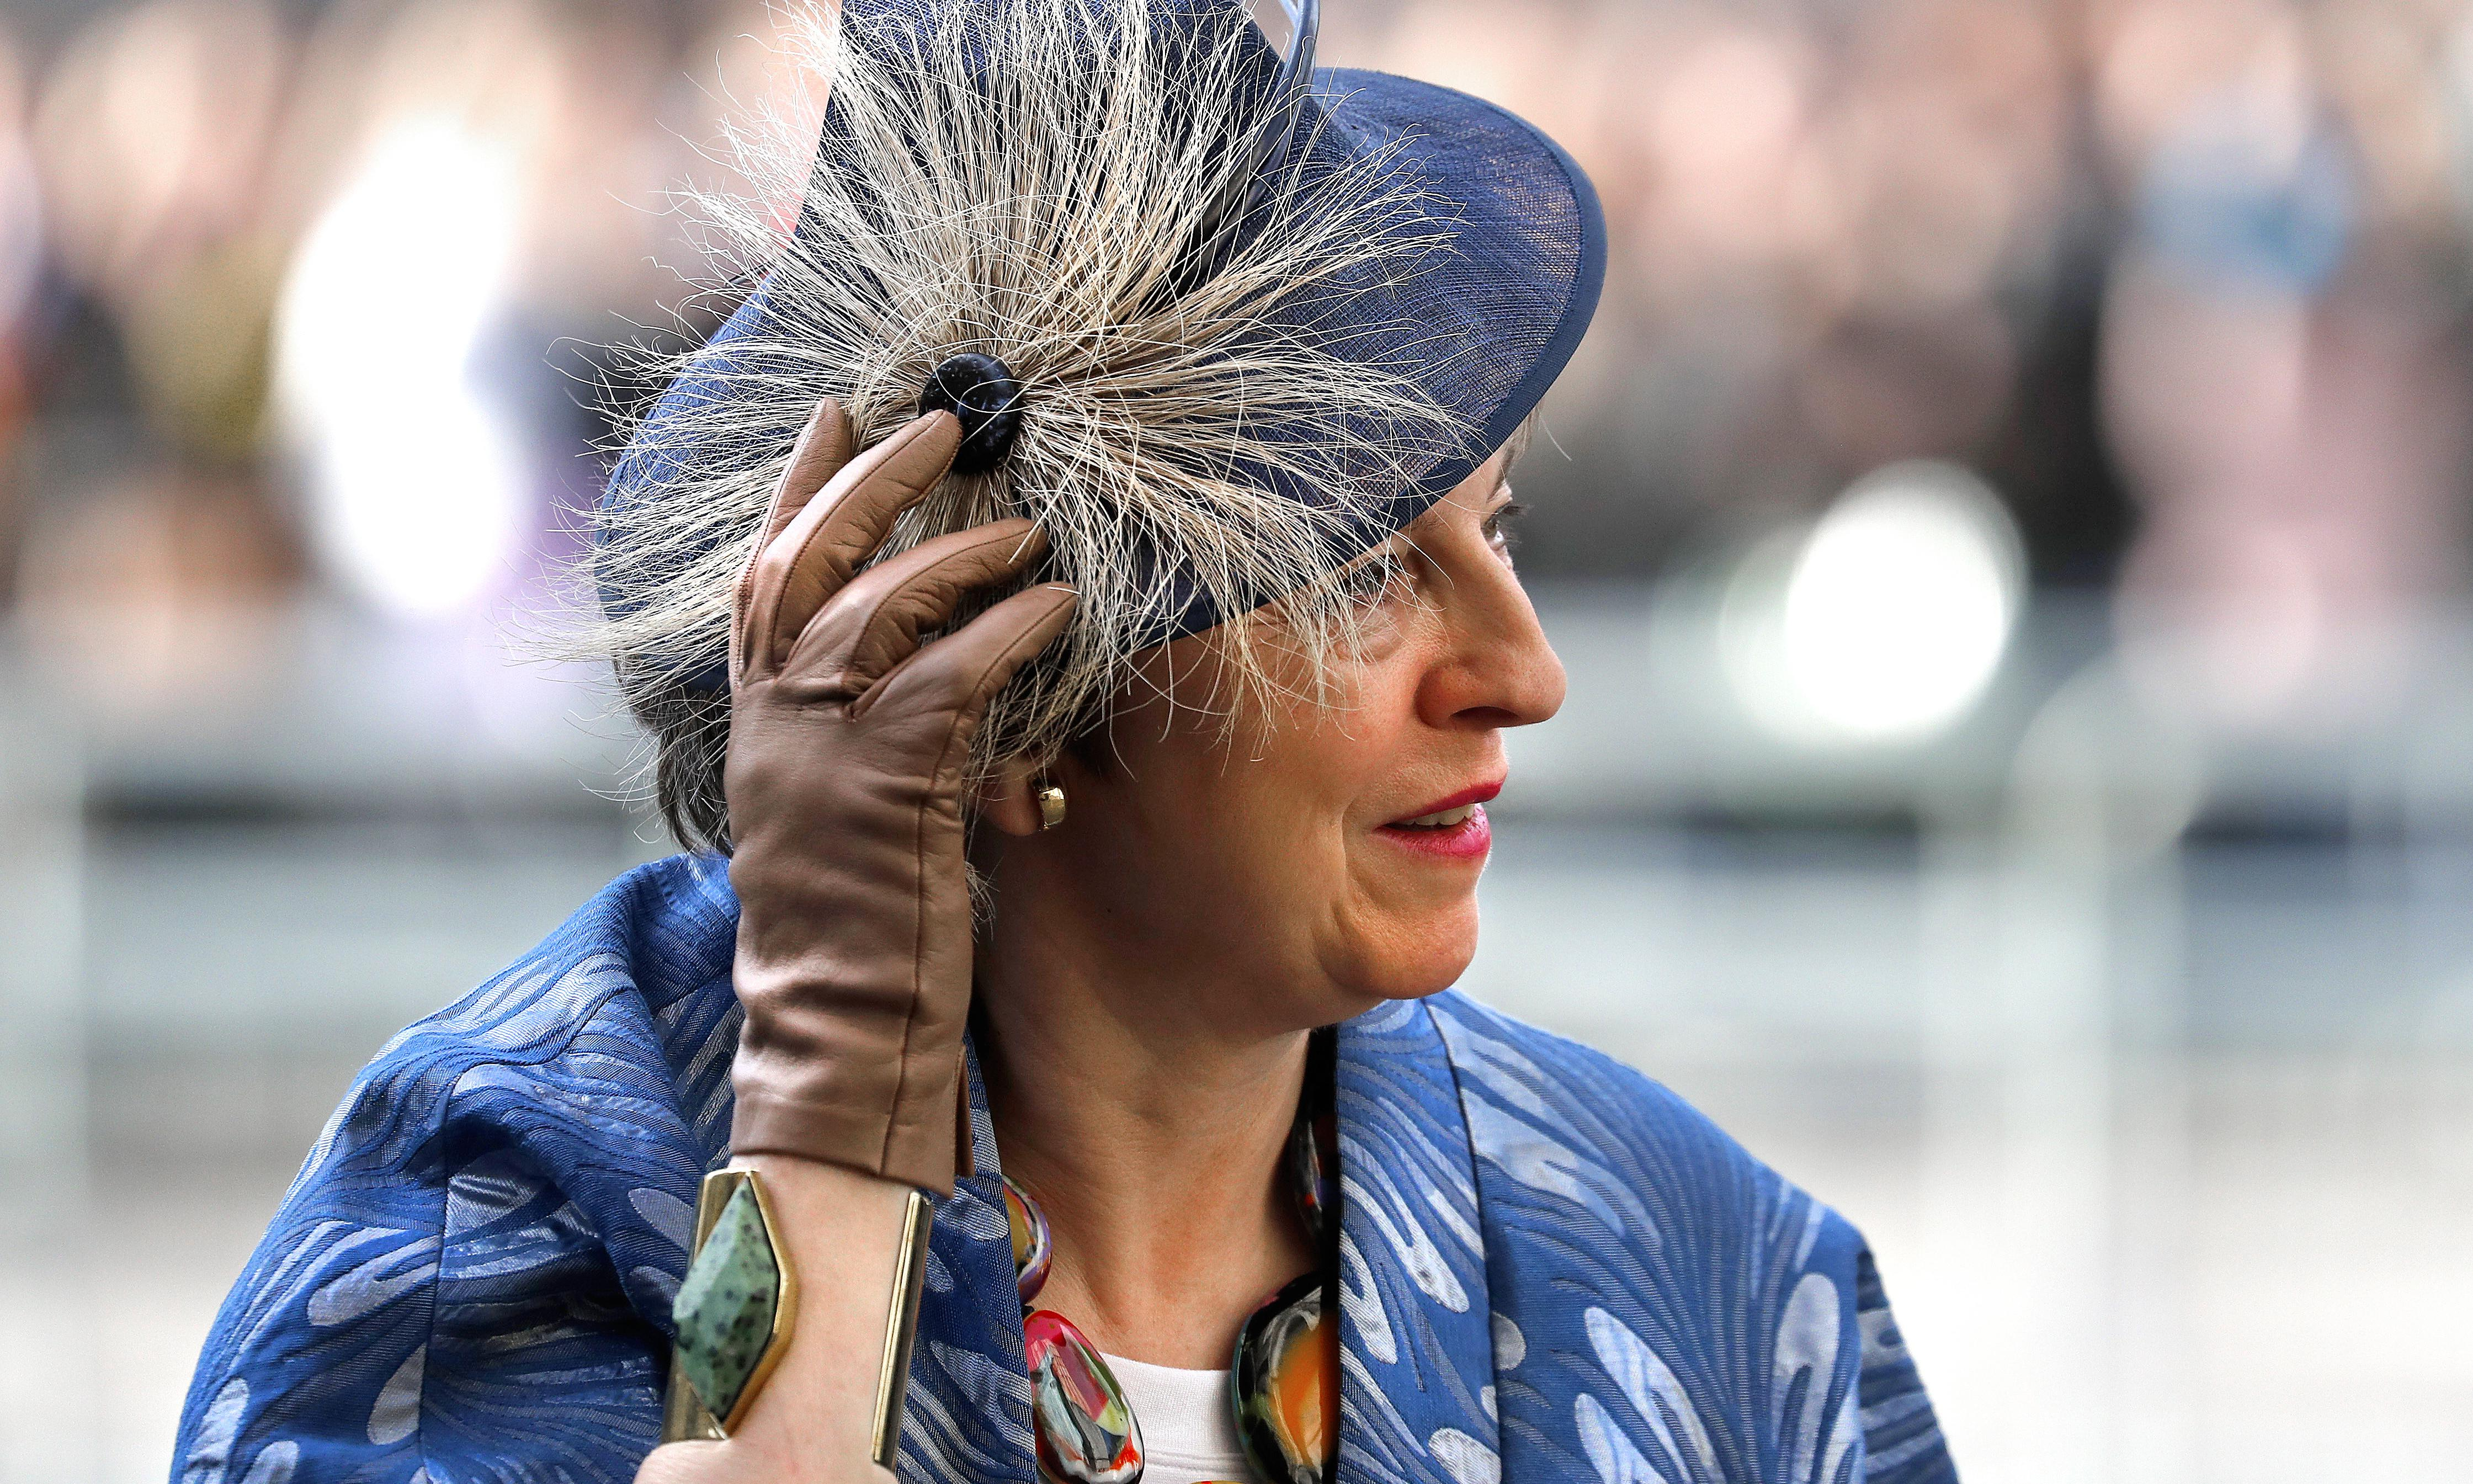 The gloves are on: Theresa May's latest fashion statement